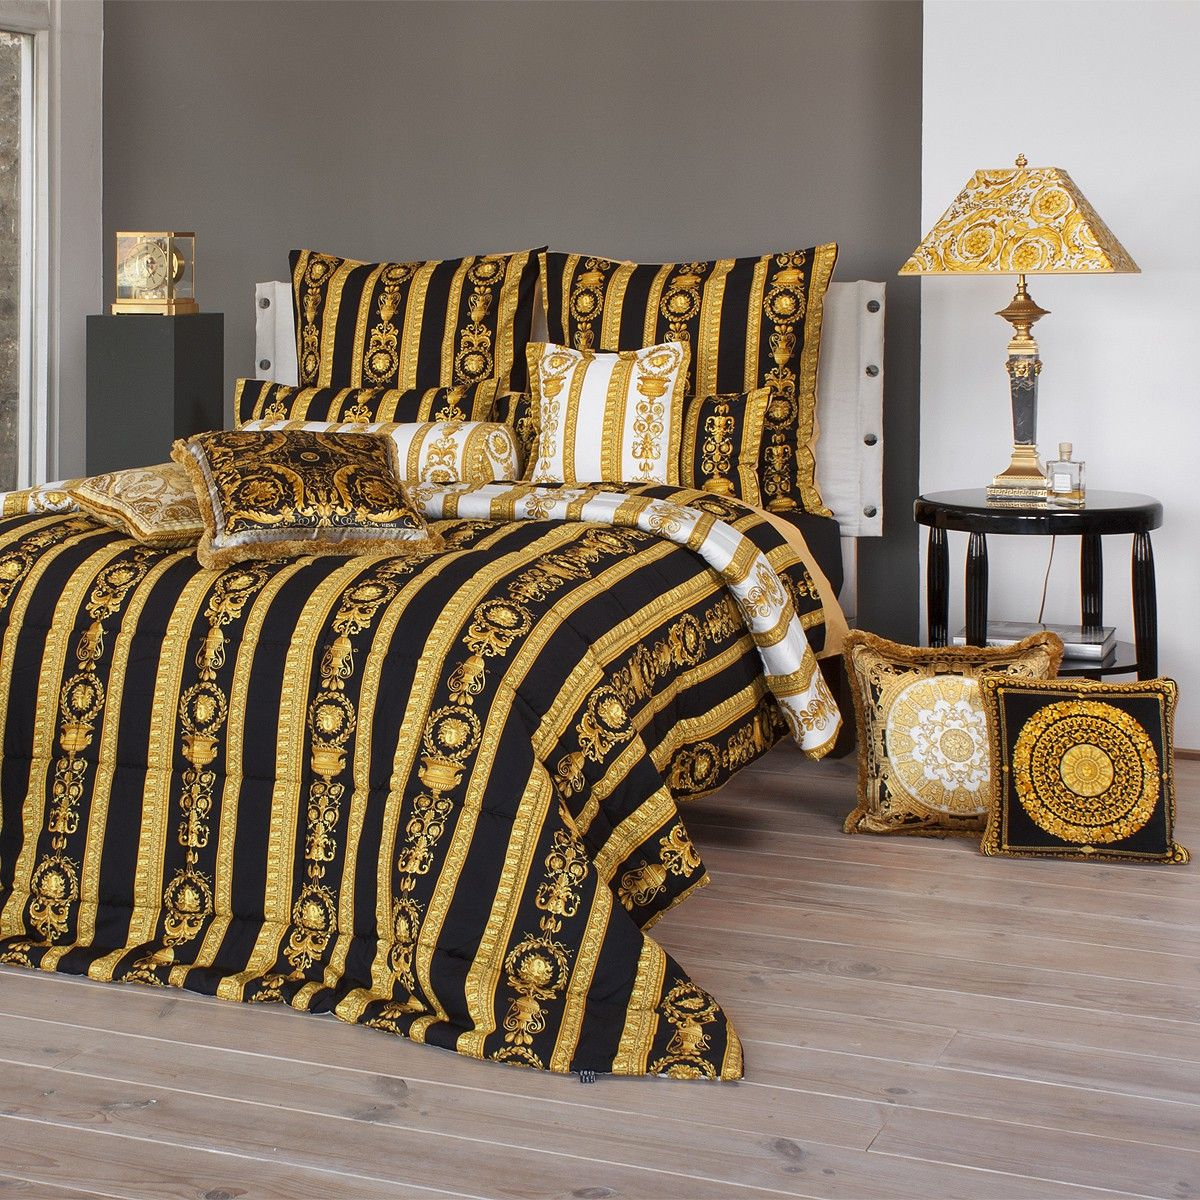 versace medusa bettw sche my blog. Black Bedroom Furniture Sets. Home Design Ideas